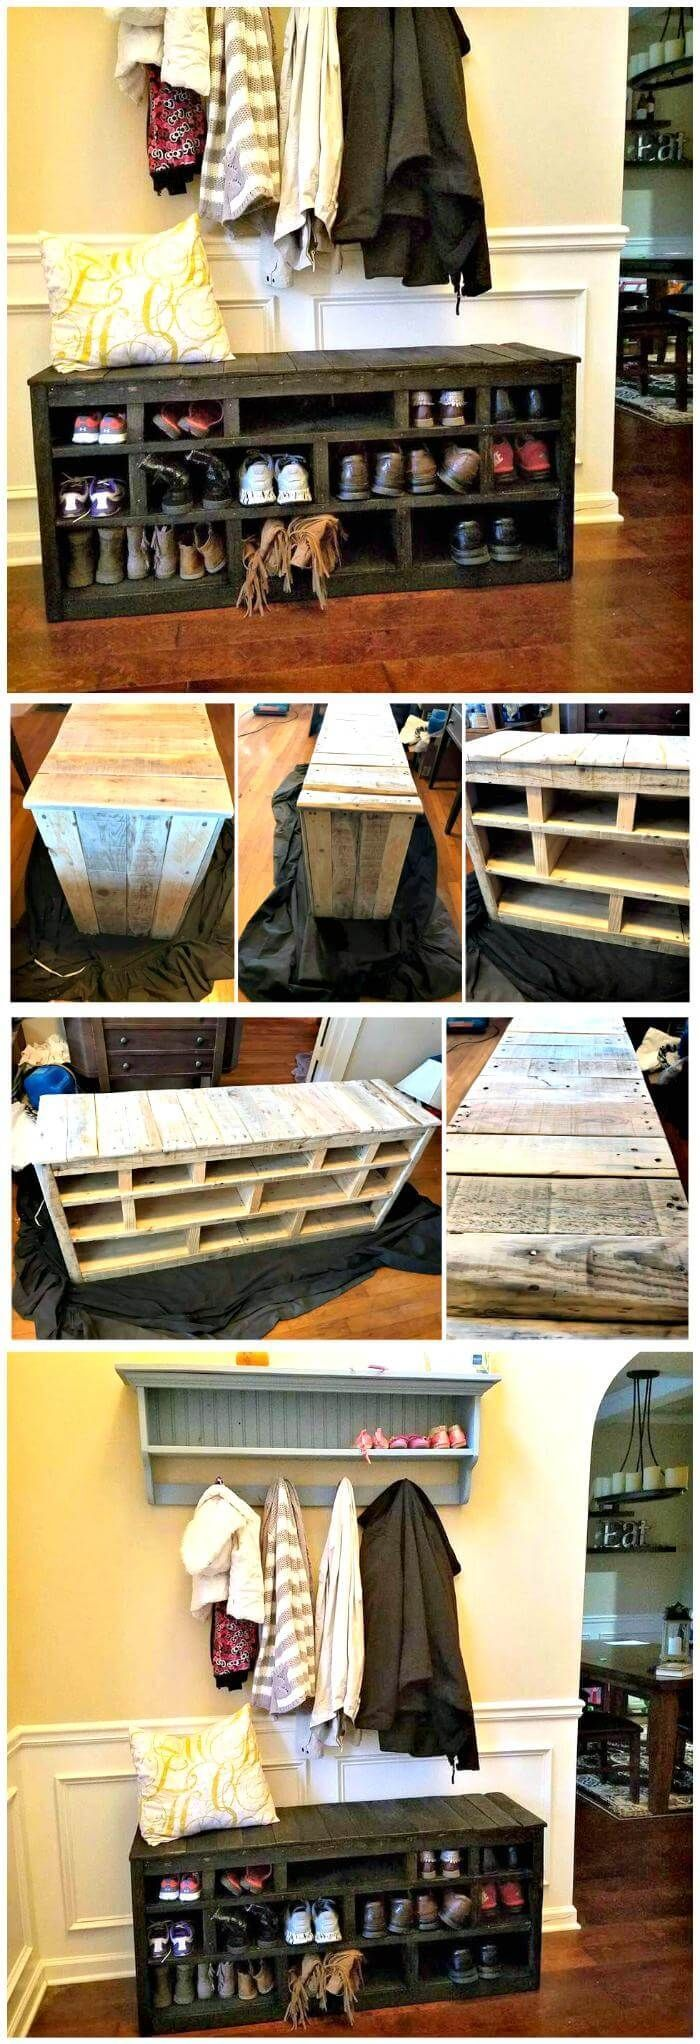 Latest Free of Charge Wooden Pallets shoe rack Suggestions#charge #free #latest #pallets #rack #shoe #suggestions #wooden